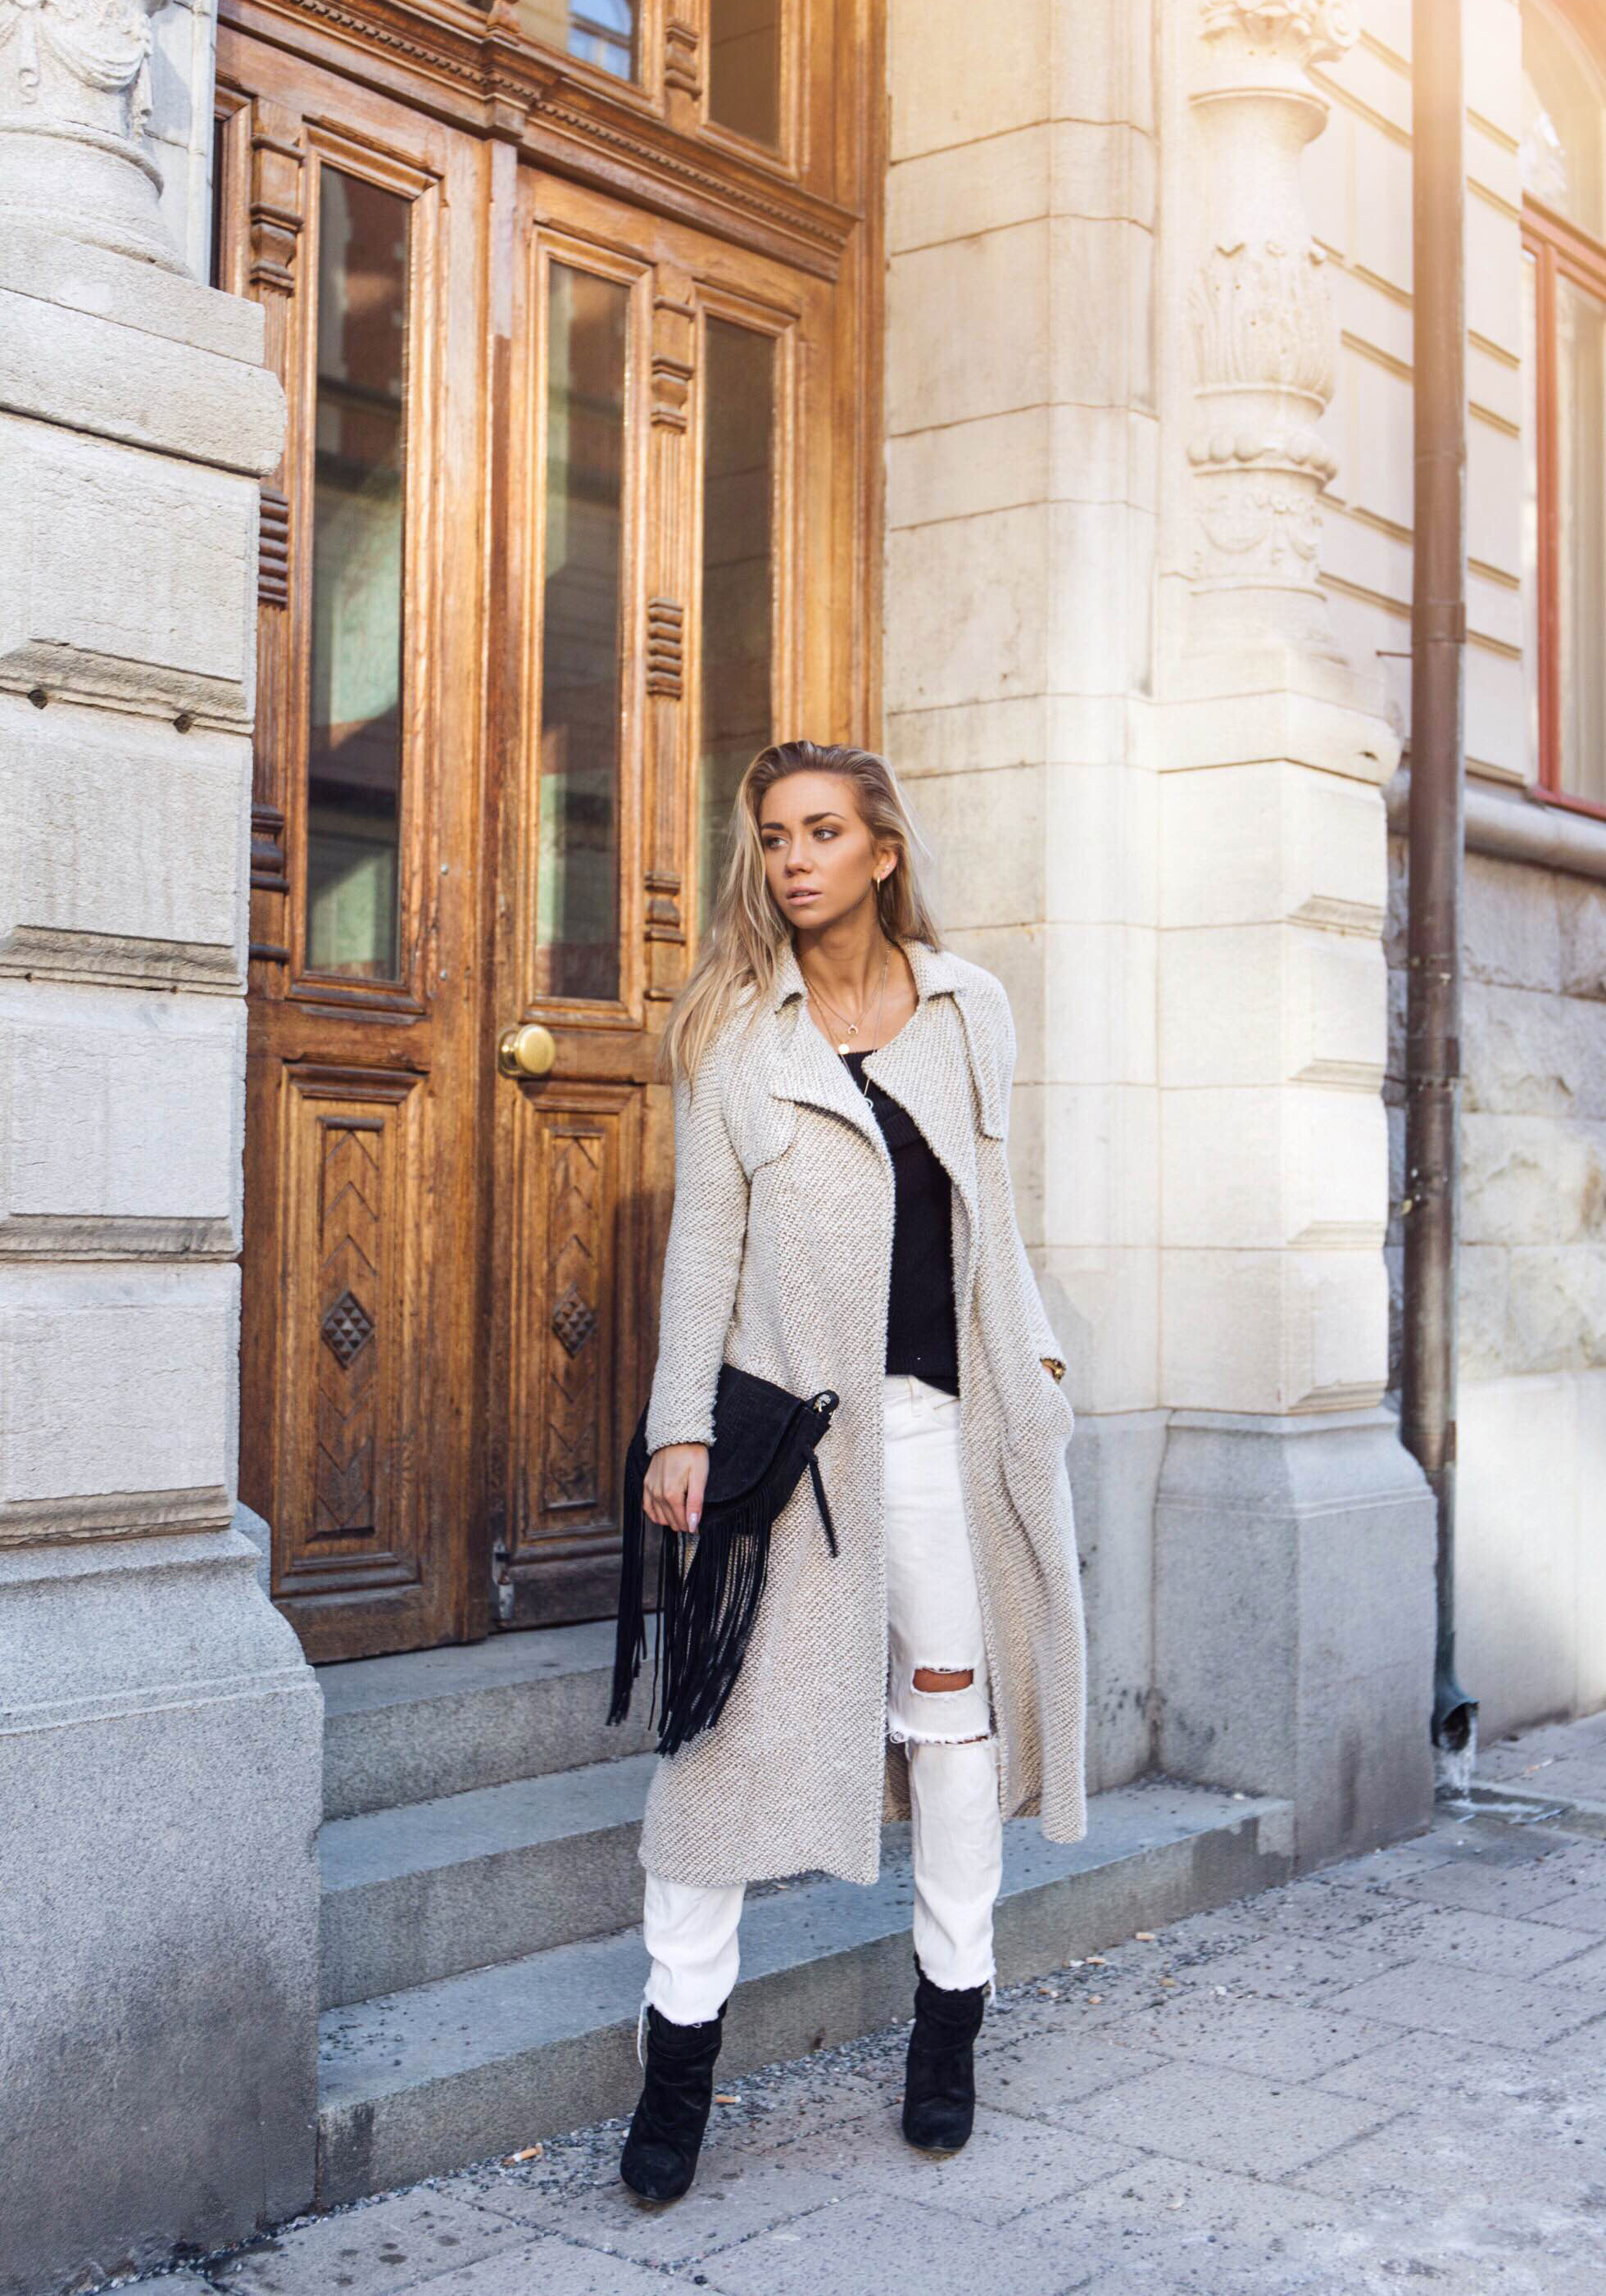 These awesome white combat trousers afford Lisa Olsson an edgy and cool tomboy style, which is countered by the uber femininity of a pale pink maxi coat. We love this hip winter style! Coat/Top: River Island, Jeans/Shoes: H&M.